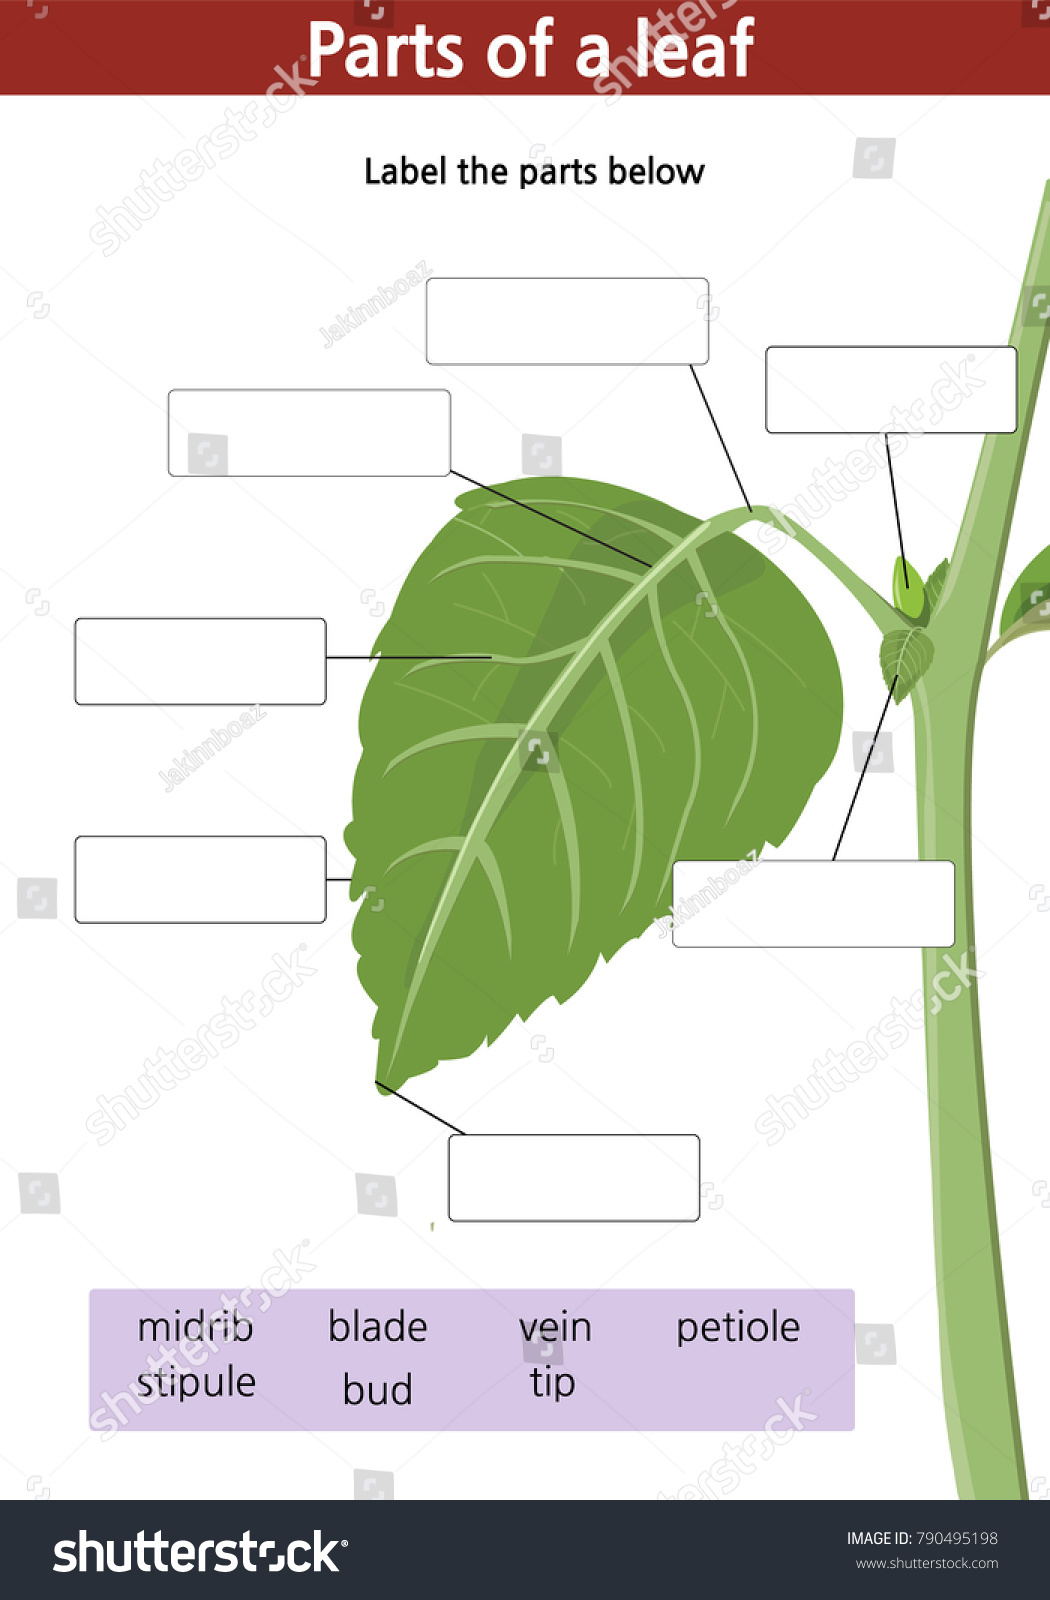 Worksheets Parts Of A Leaf Worksheet Cheatslist Free